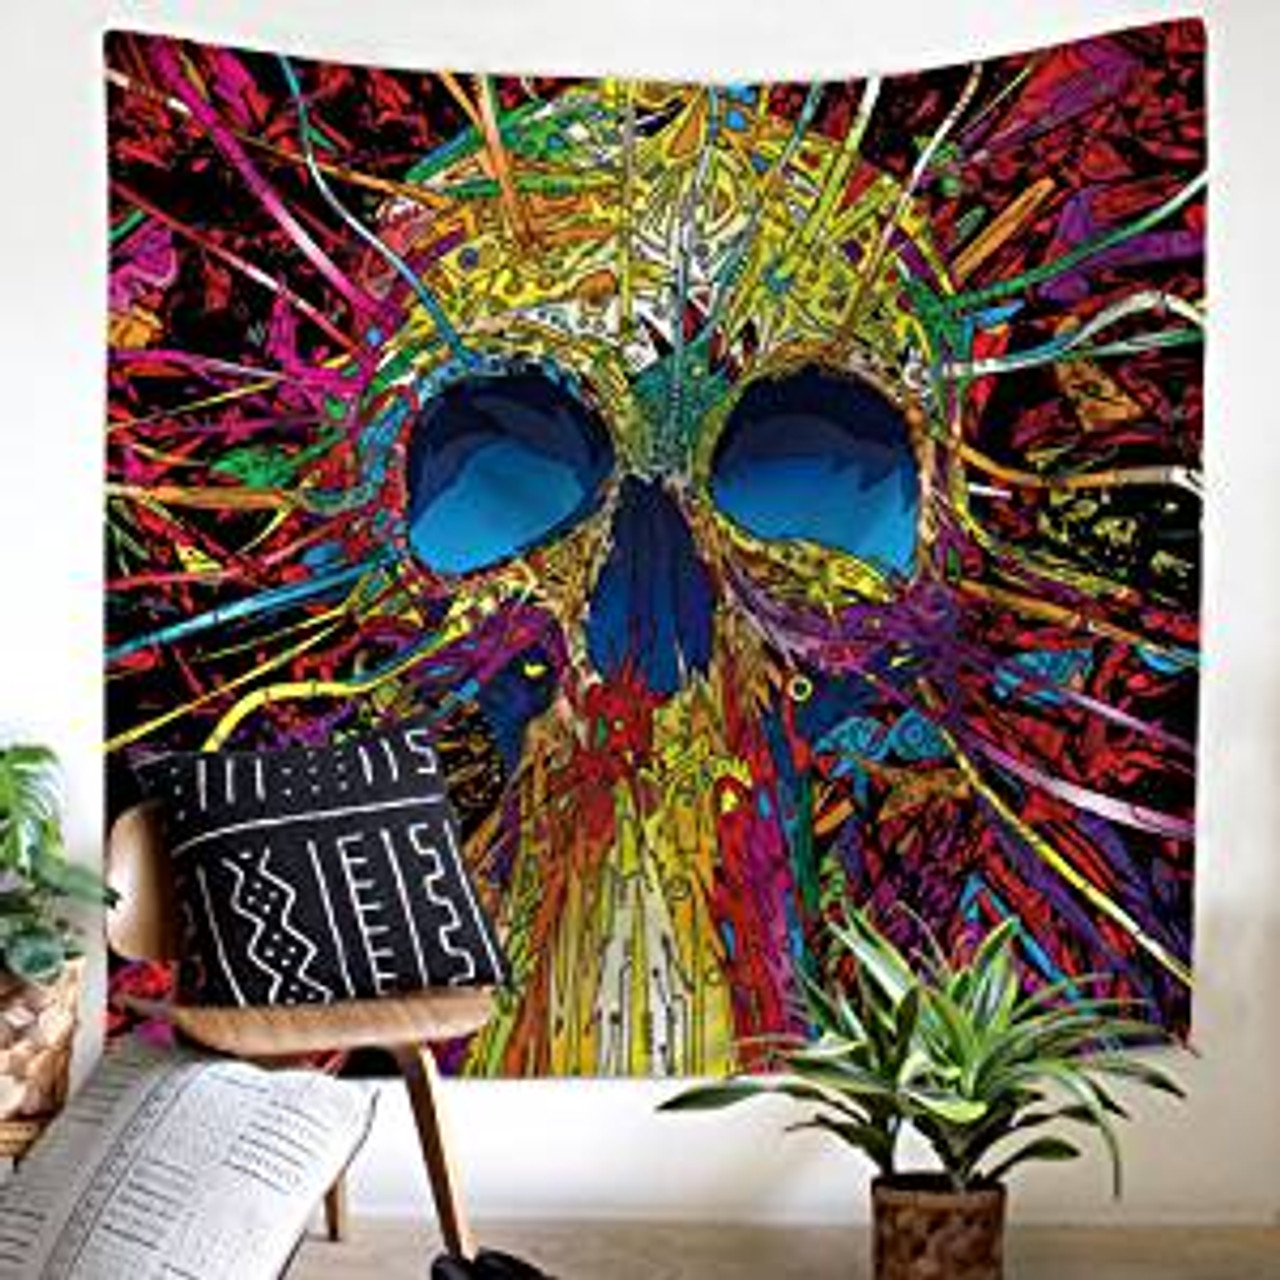 Skull Tapestry Gothic Magical Skeletons Colorful Wall Hanging Wall Art For Living Room Bedroom Dorm Large 150 X 200 Color Me Crazzy